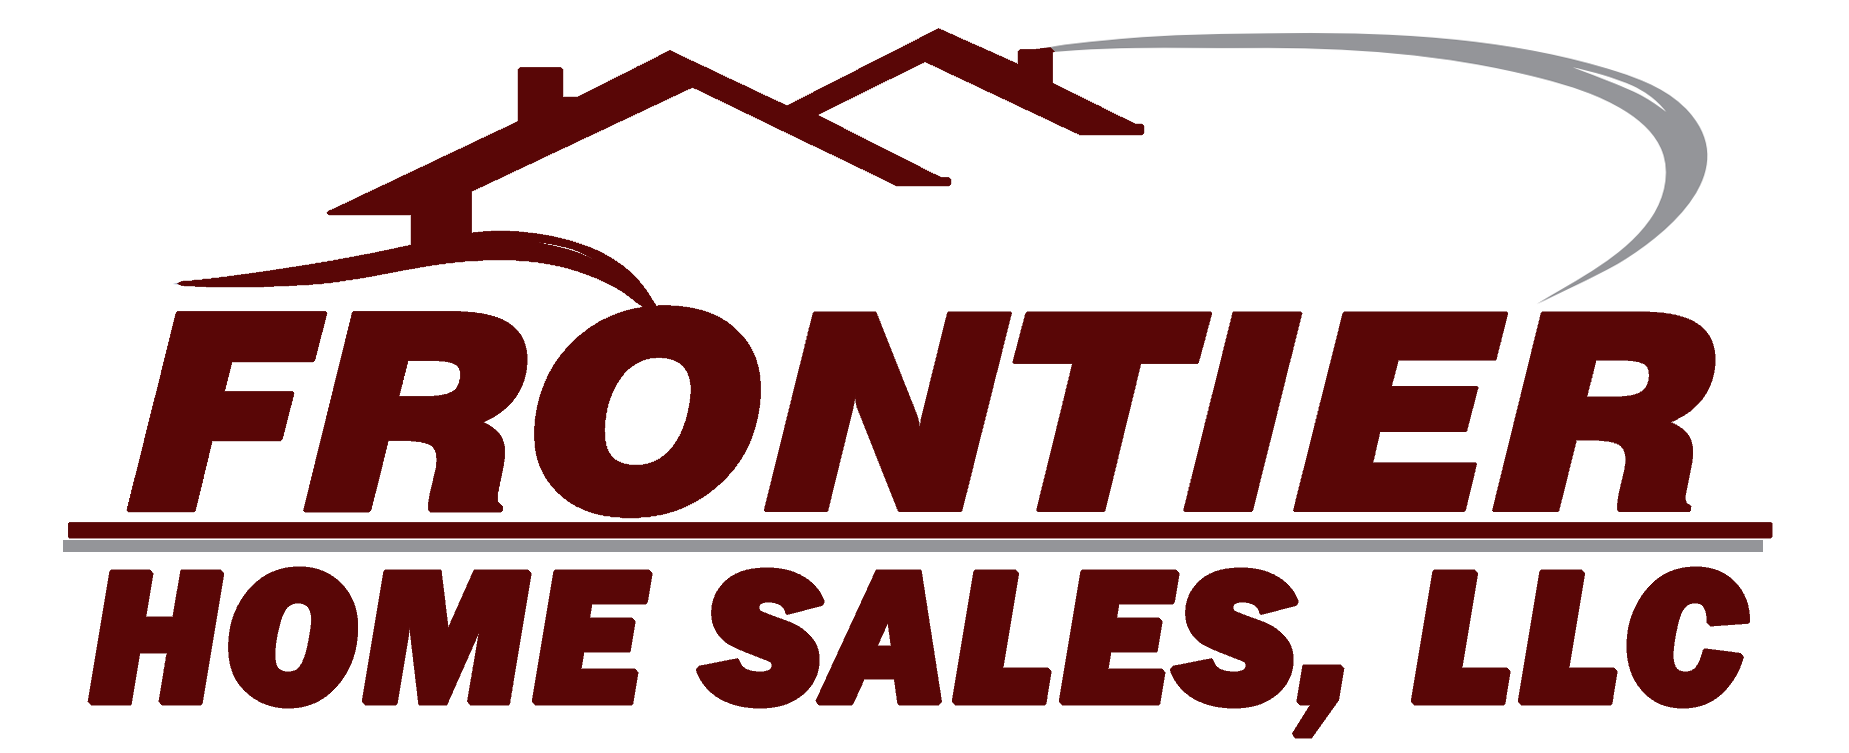 Frontier Home Sales, LLC